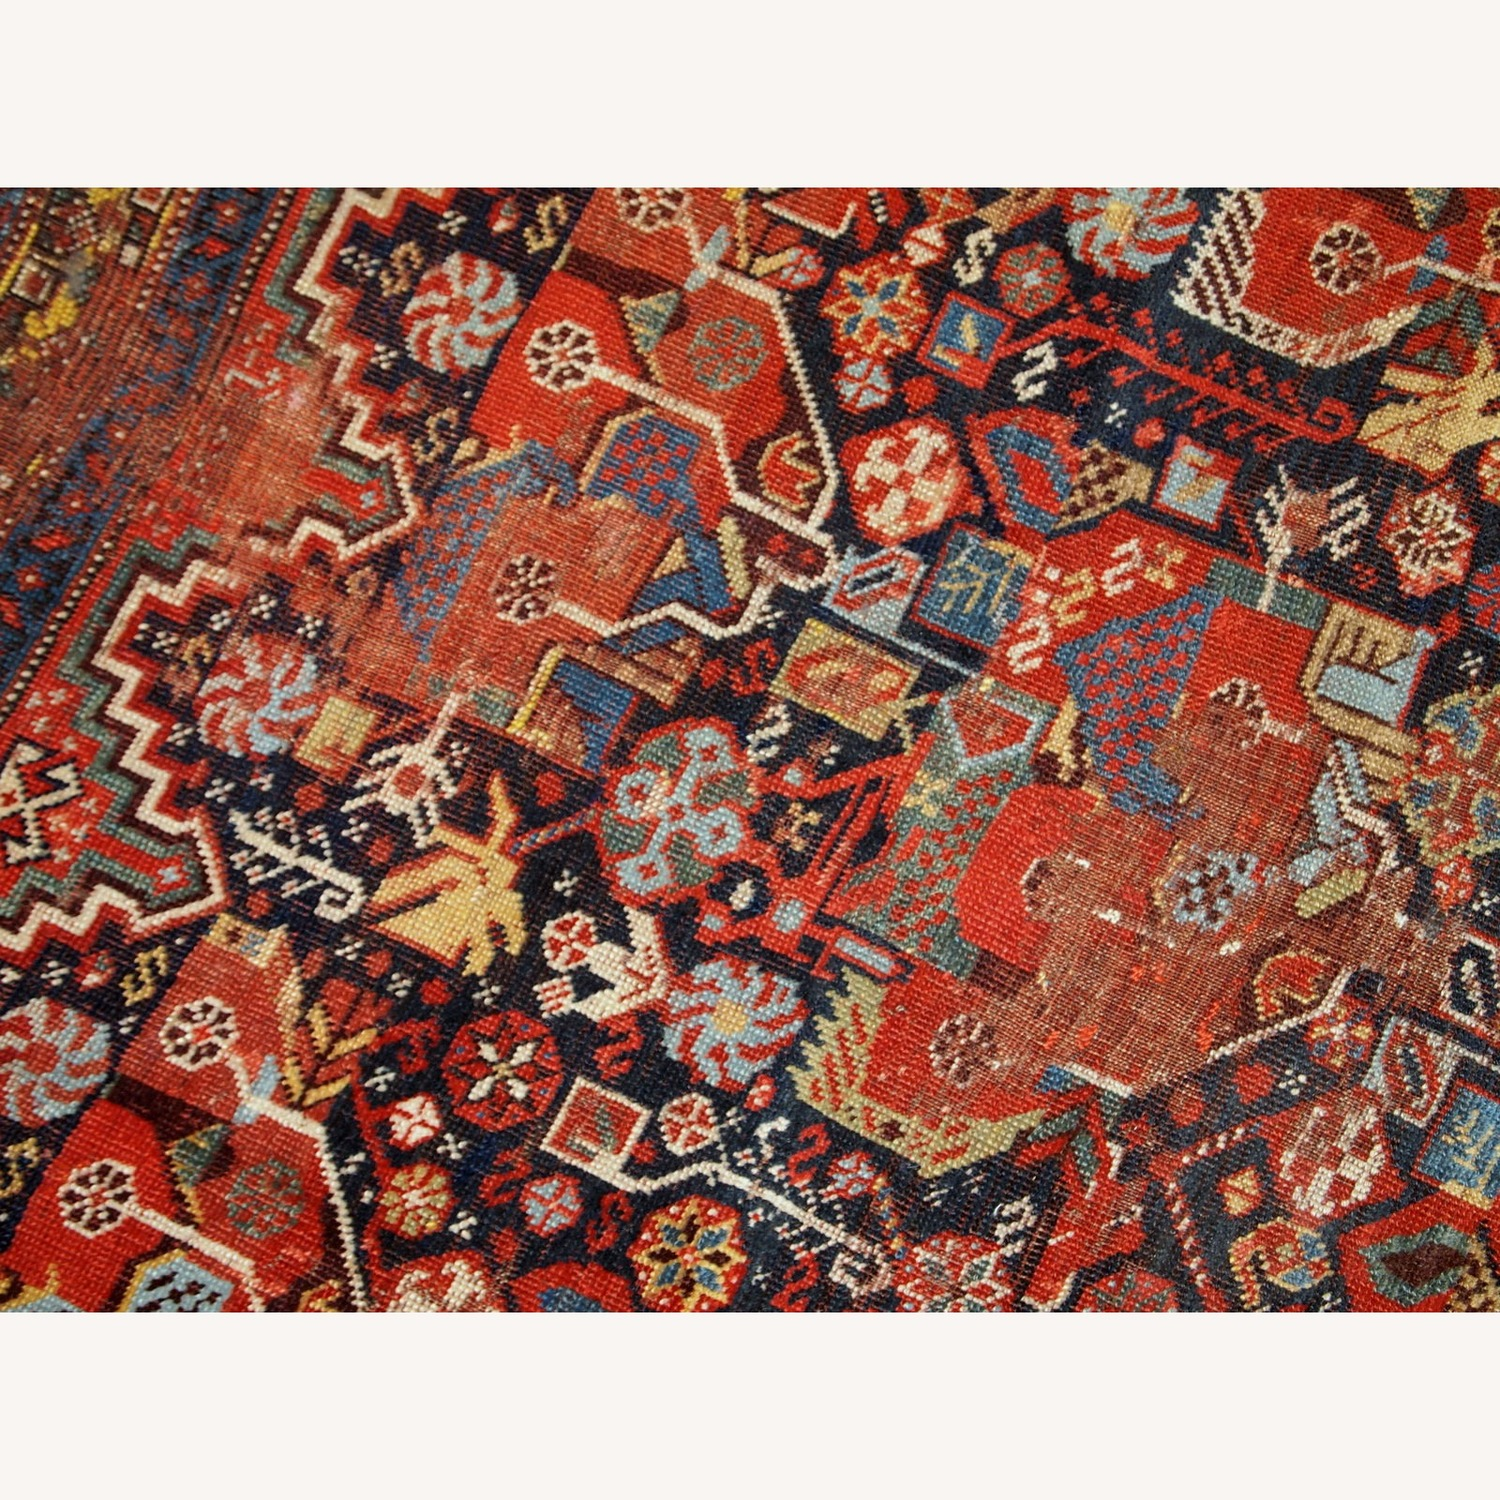 Handmade Antique Collectible Persian Khamseh Rug - image-9